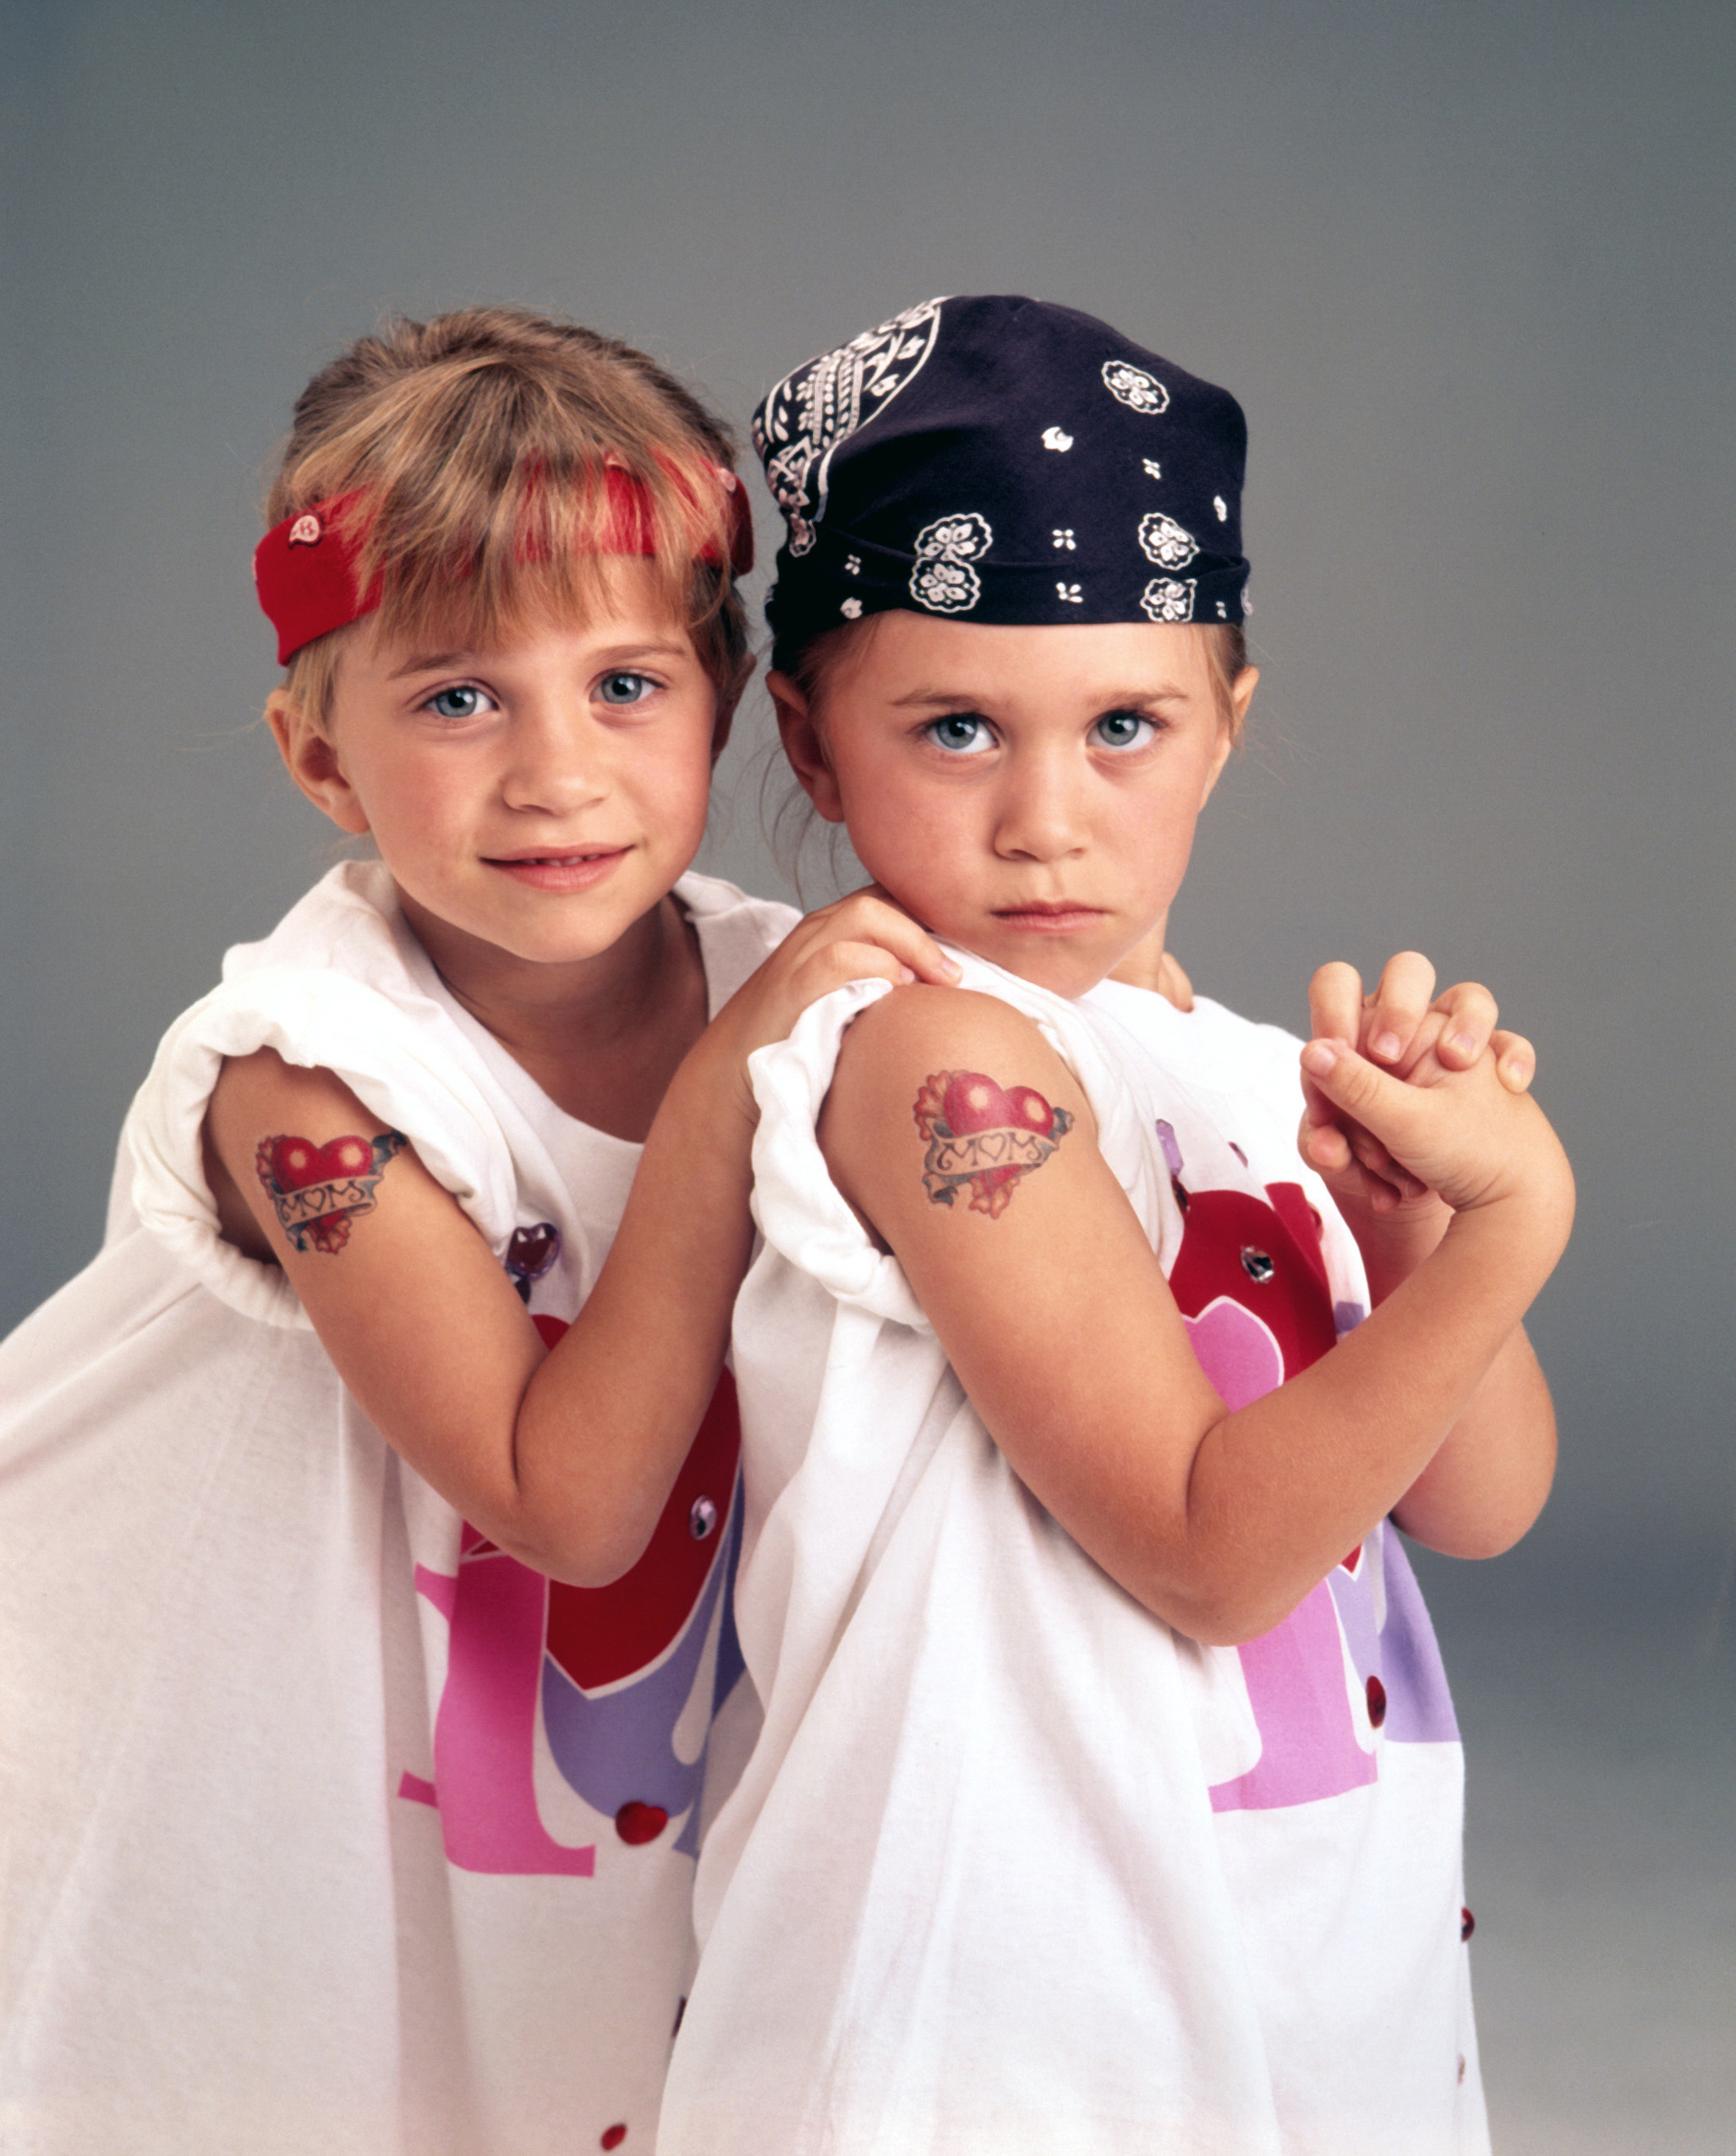 The Olsen Twins as Kids